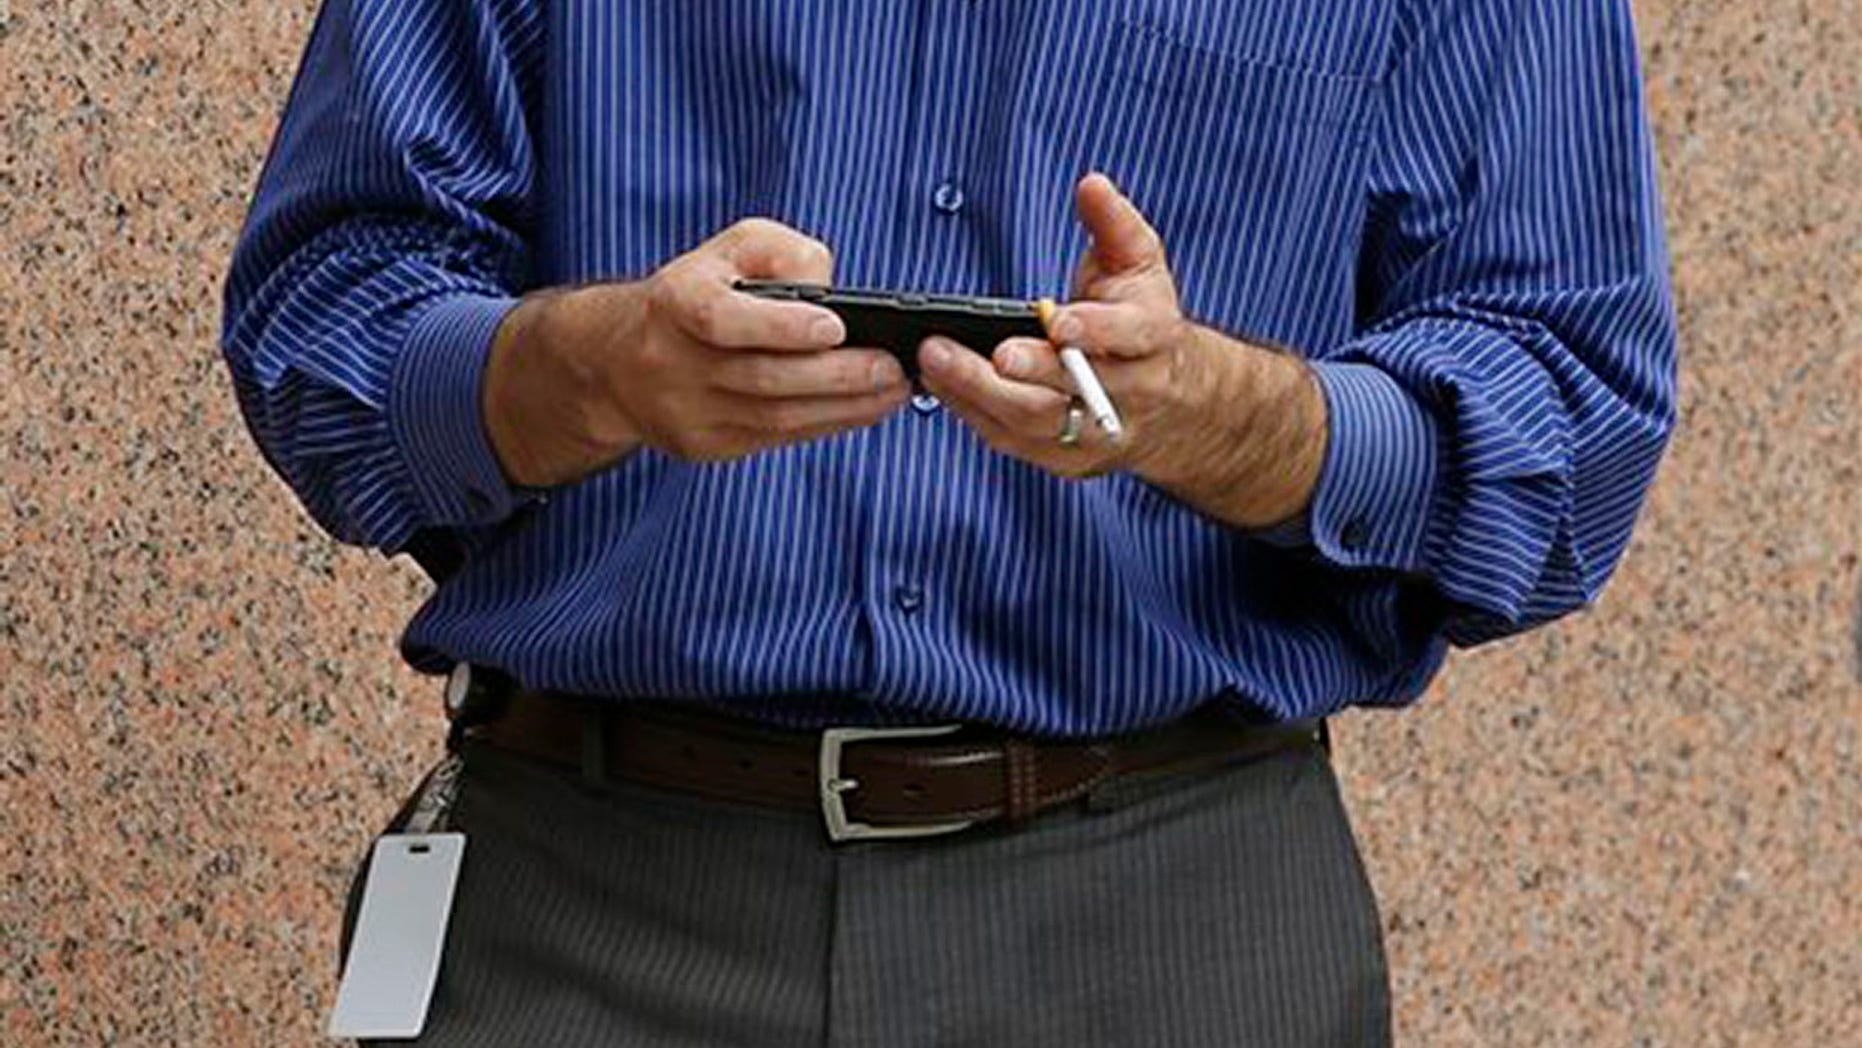 A man checks his cell phone while smoking outside an office building, Tuesday, July 21, 2015, in Providence, R.I. Providence is considering an ordinance that would prohibit smoking throughout downtown.